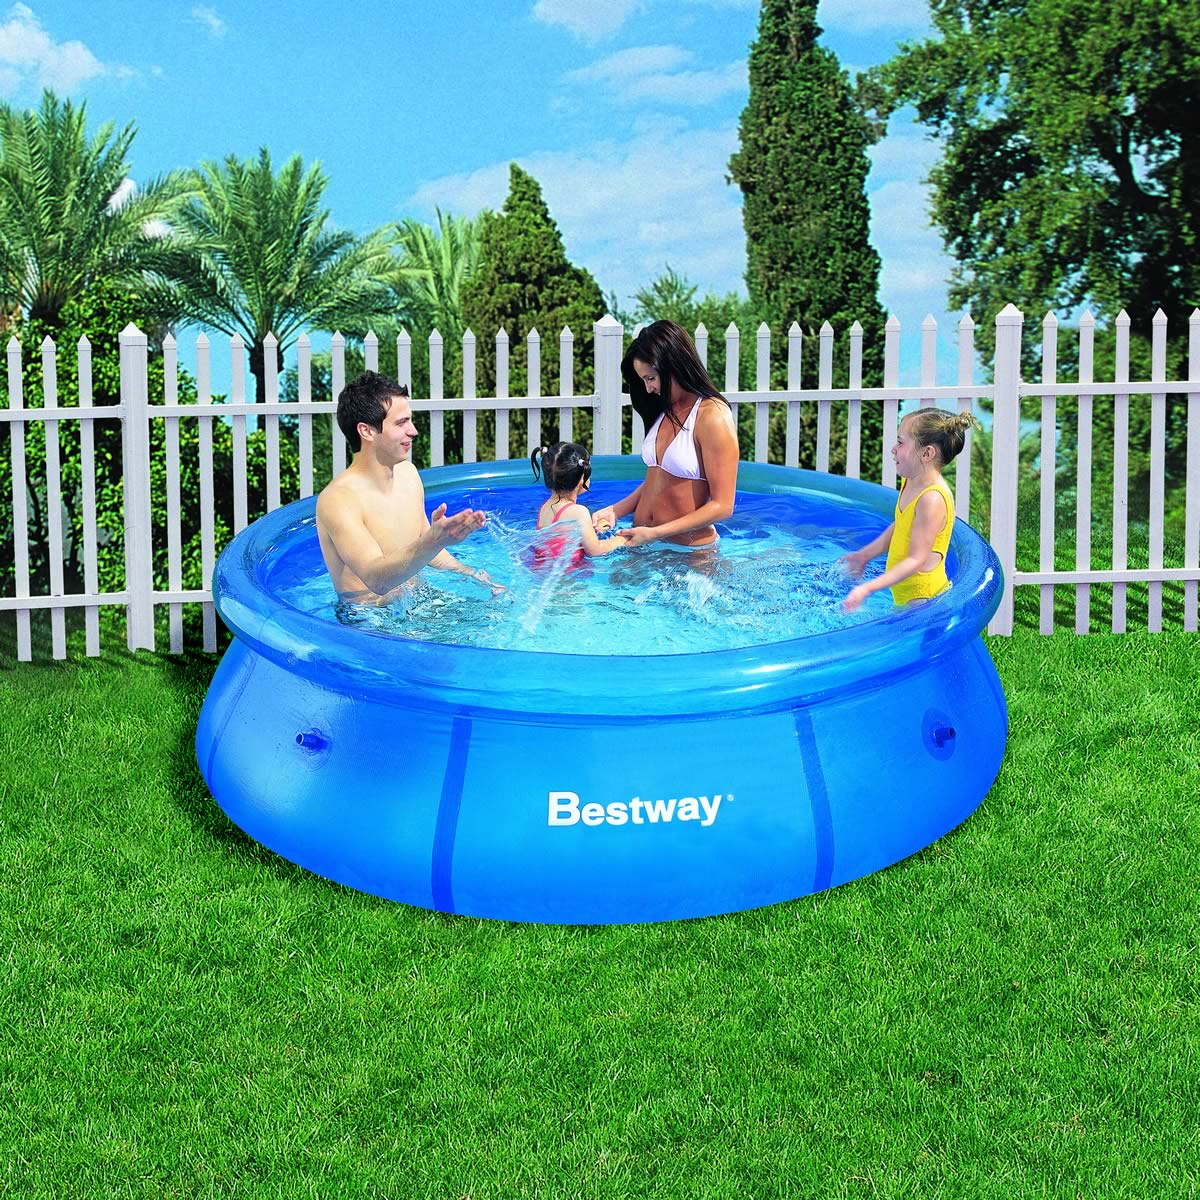 8ft fast set inflatable swimming pool garden outdoor paddling kids family water. Black Bedroom Furniture Sets. Home Design Ideas